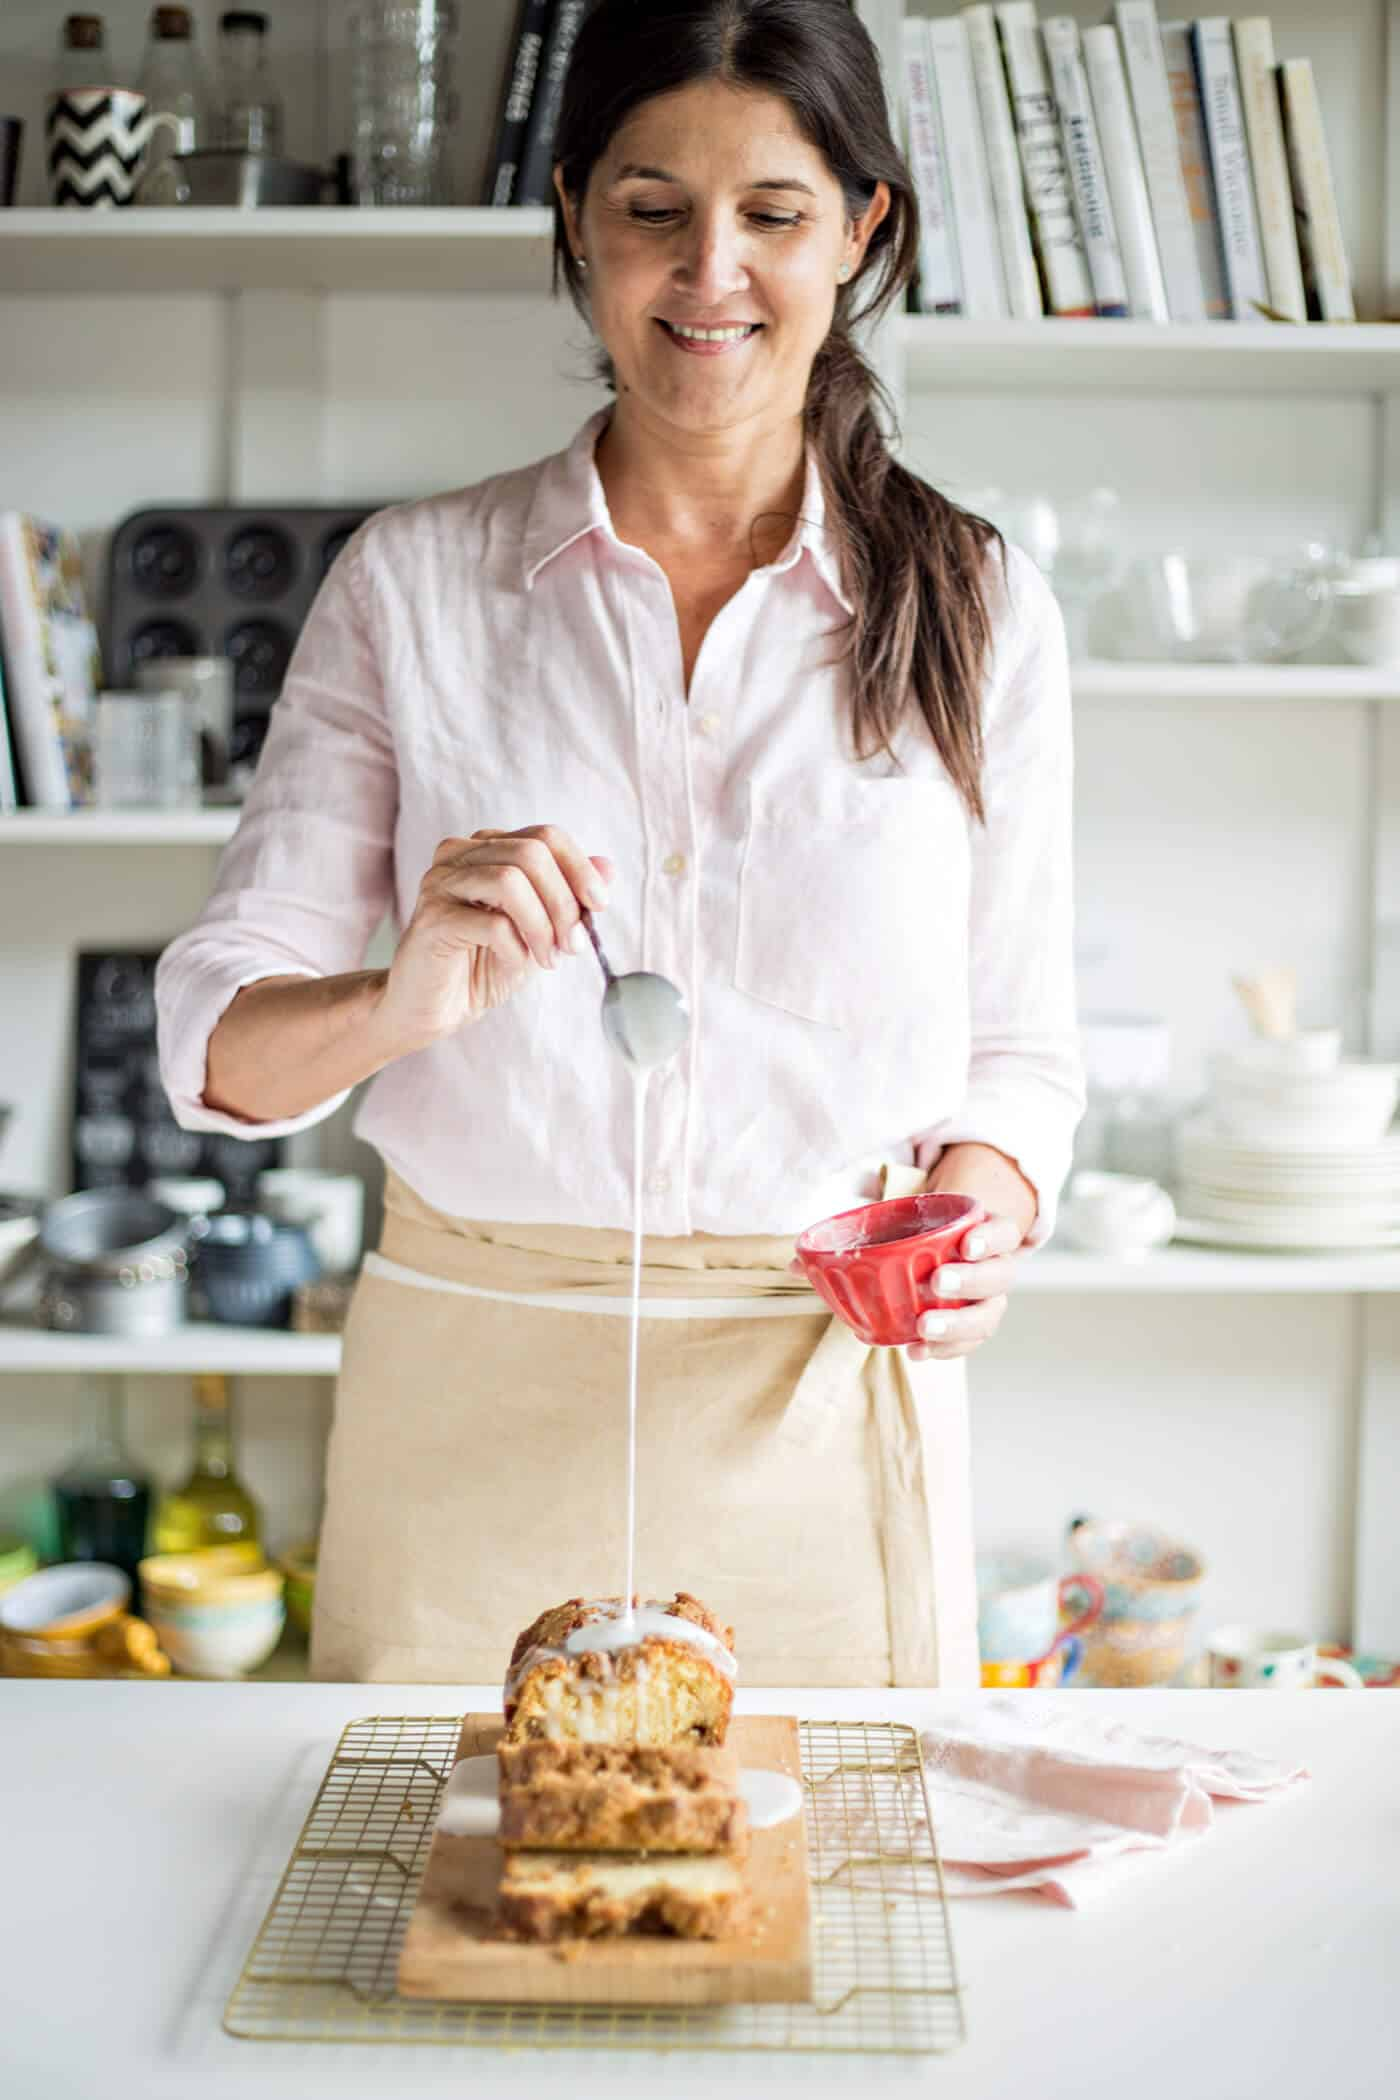 Dark haired woman with pink shirt and beige apron pouring glaze over cake, bookshelf beneath her